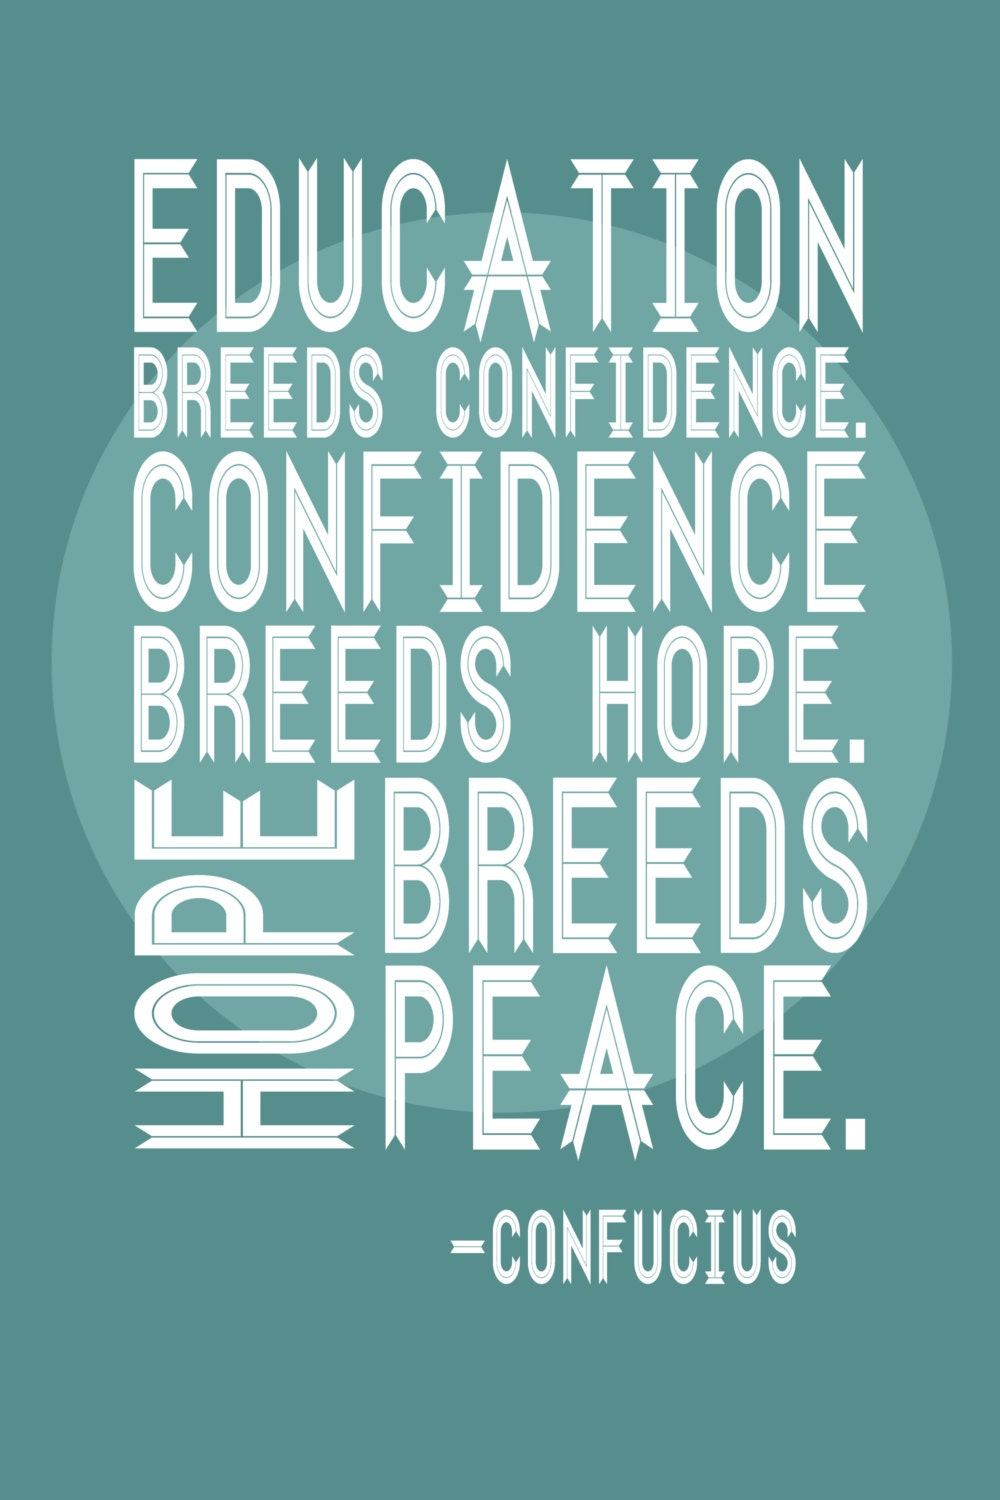 Educational Poster for Teachers Confucius Quote 20x30